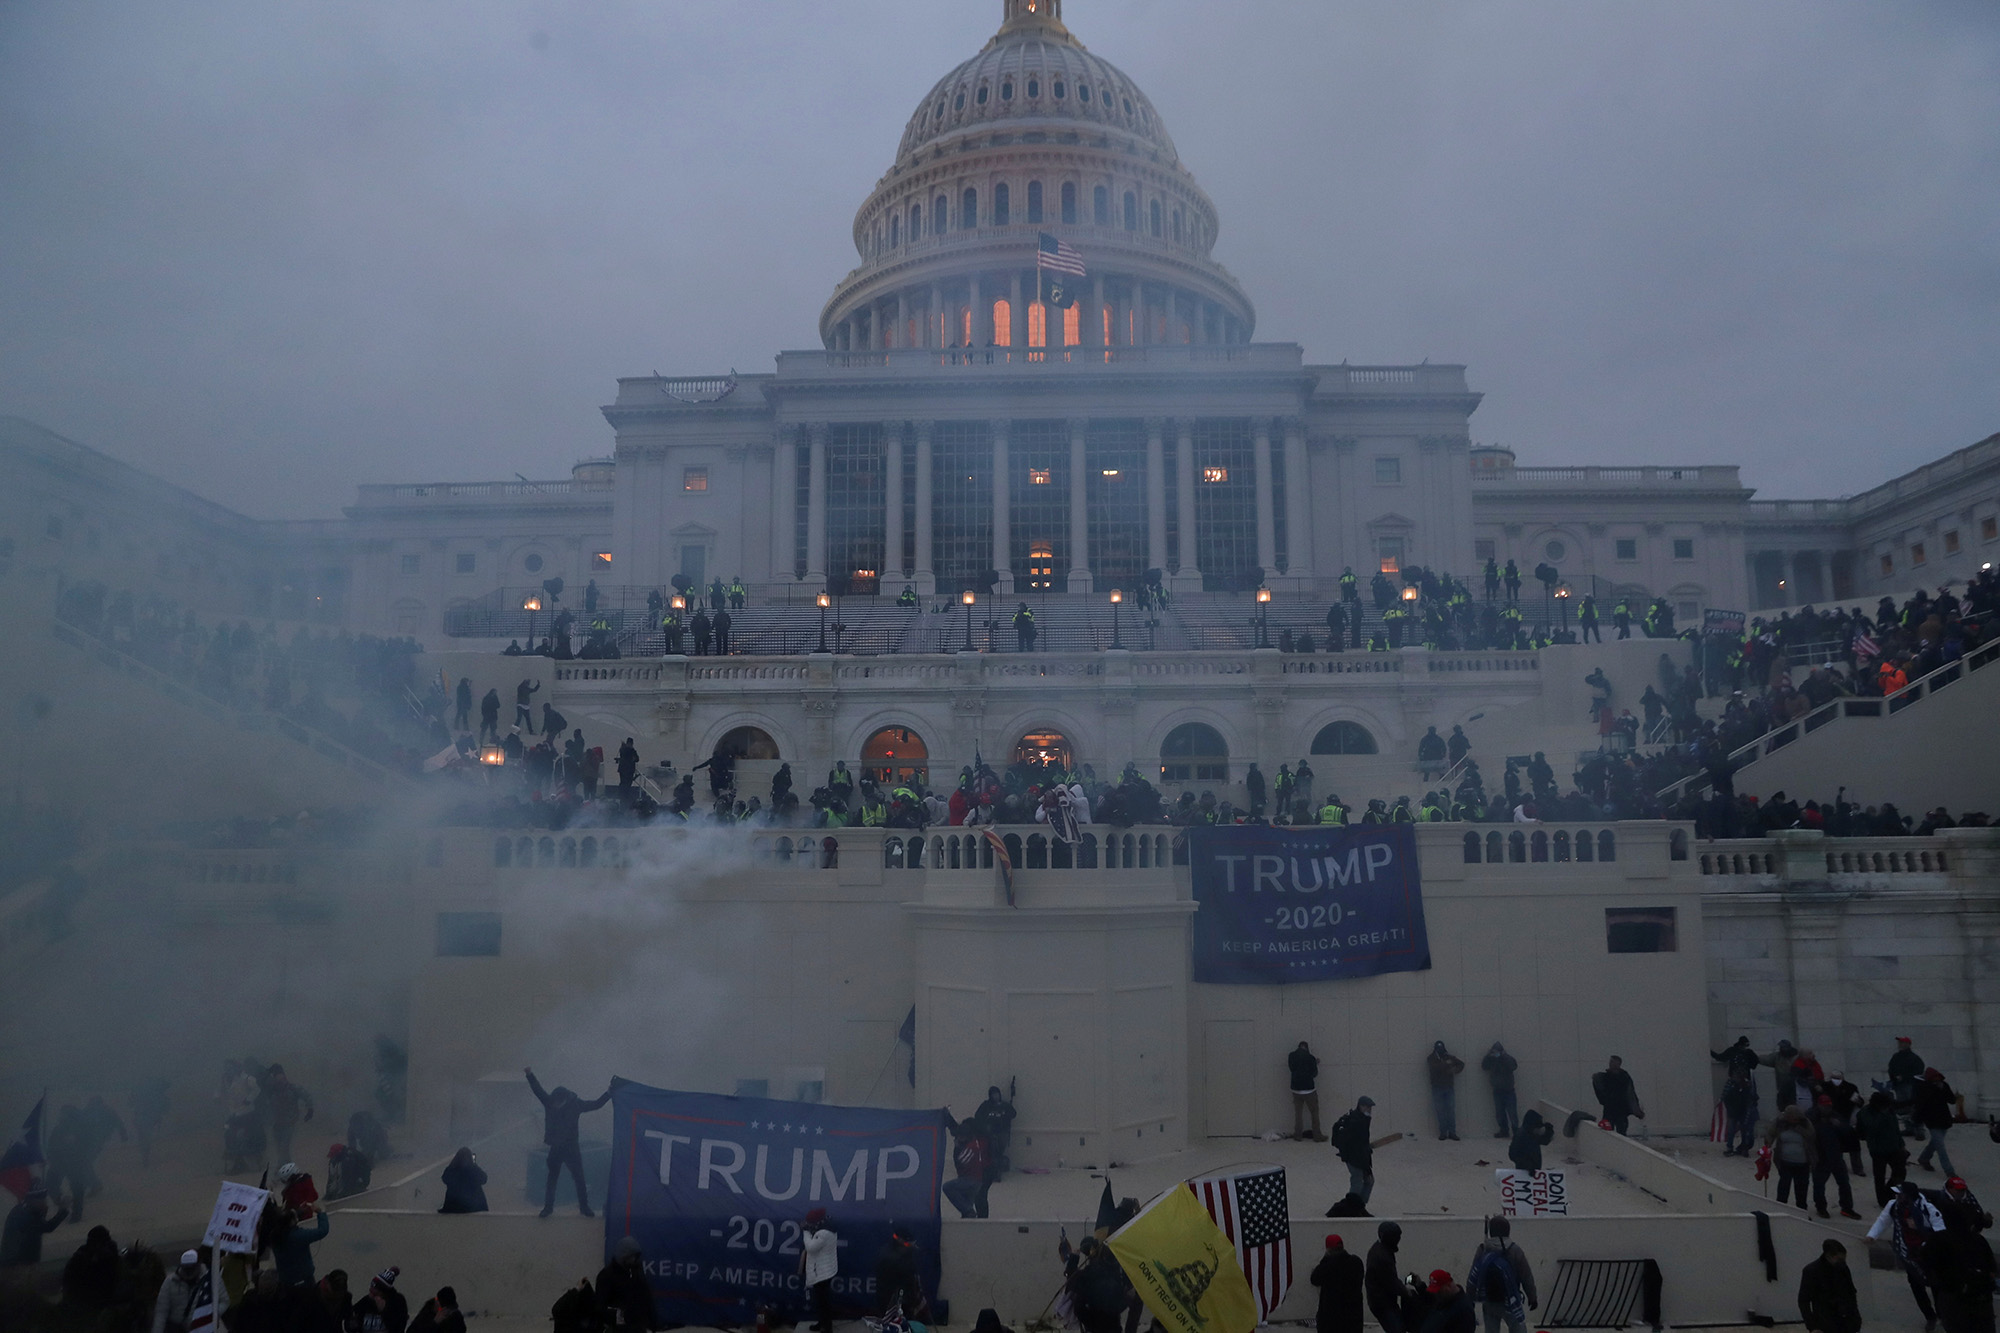 Police officers stand guard as supporters of U.S. President Donald Trump gather in front of the U.S. Capitol Building in Washington, U.S., January 6, 2021. REUTERS/Leah Millis